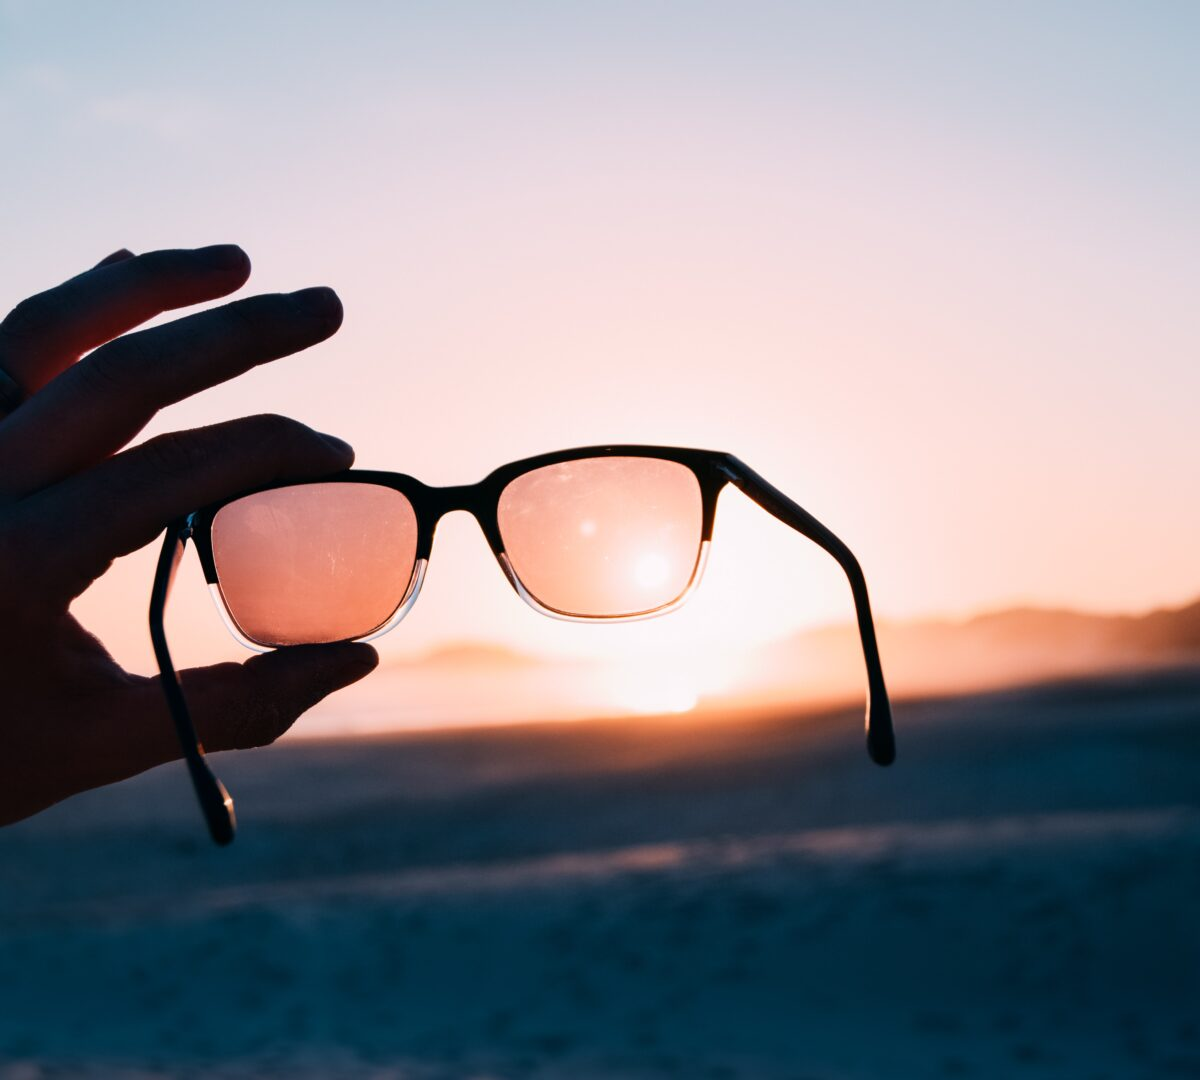 What does polarized sunglasses mean?